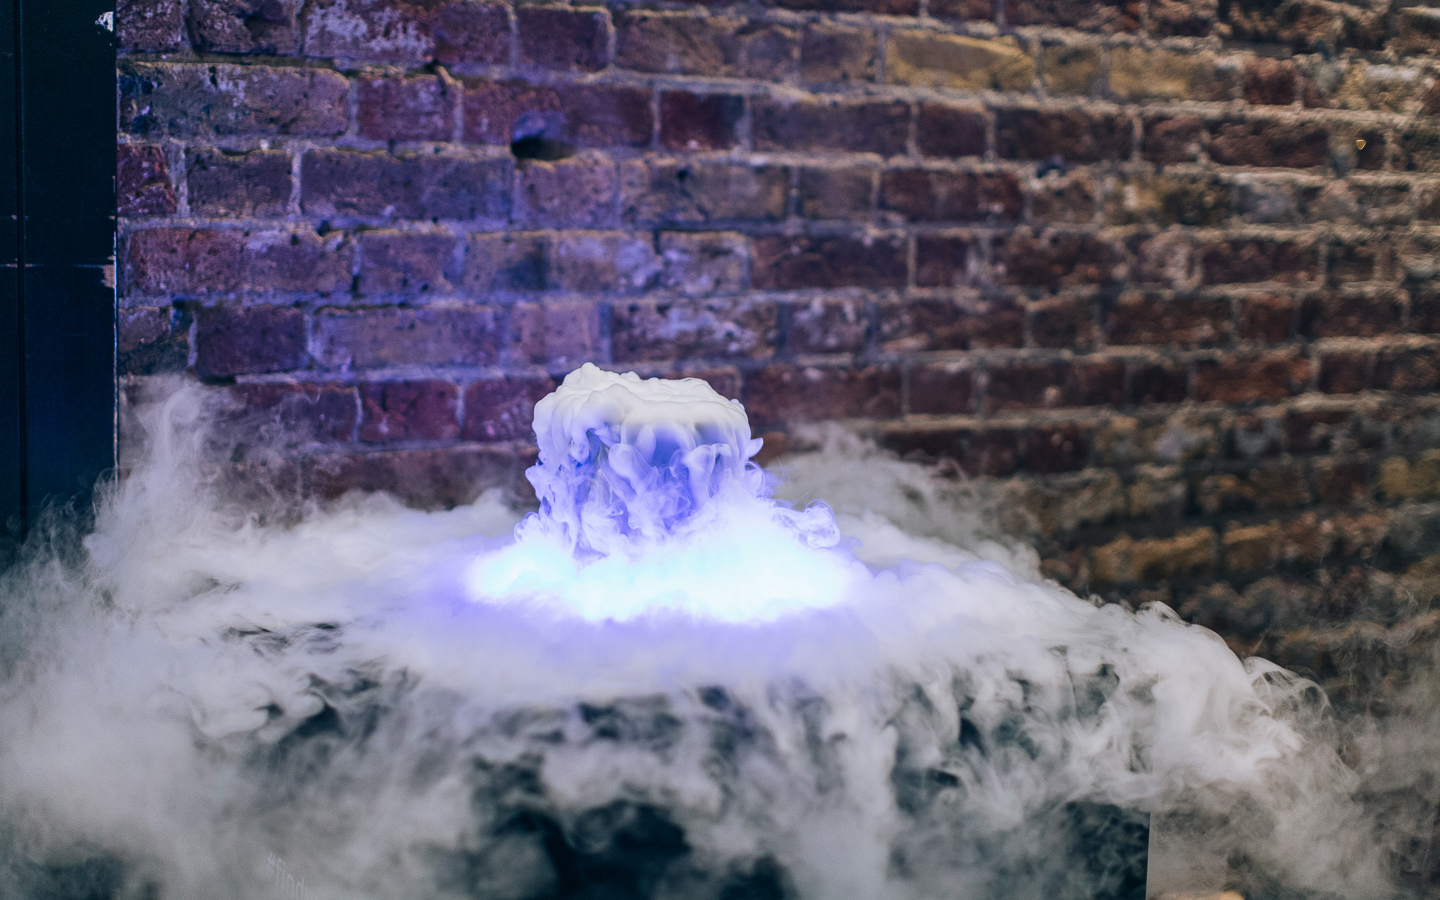 Smith and Sinclair cool party event suppliers private hire dry ice cocktails drinks